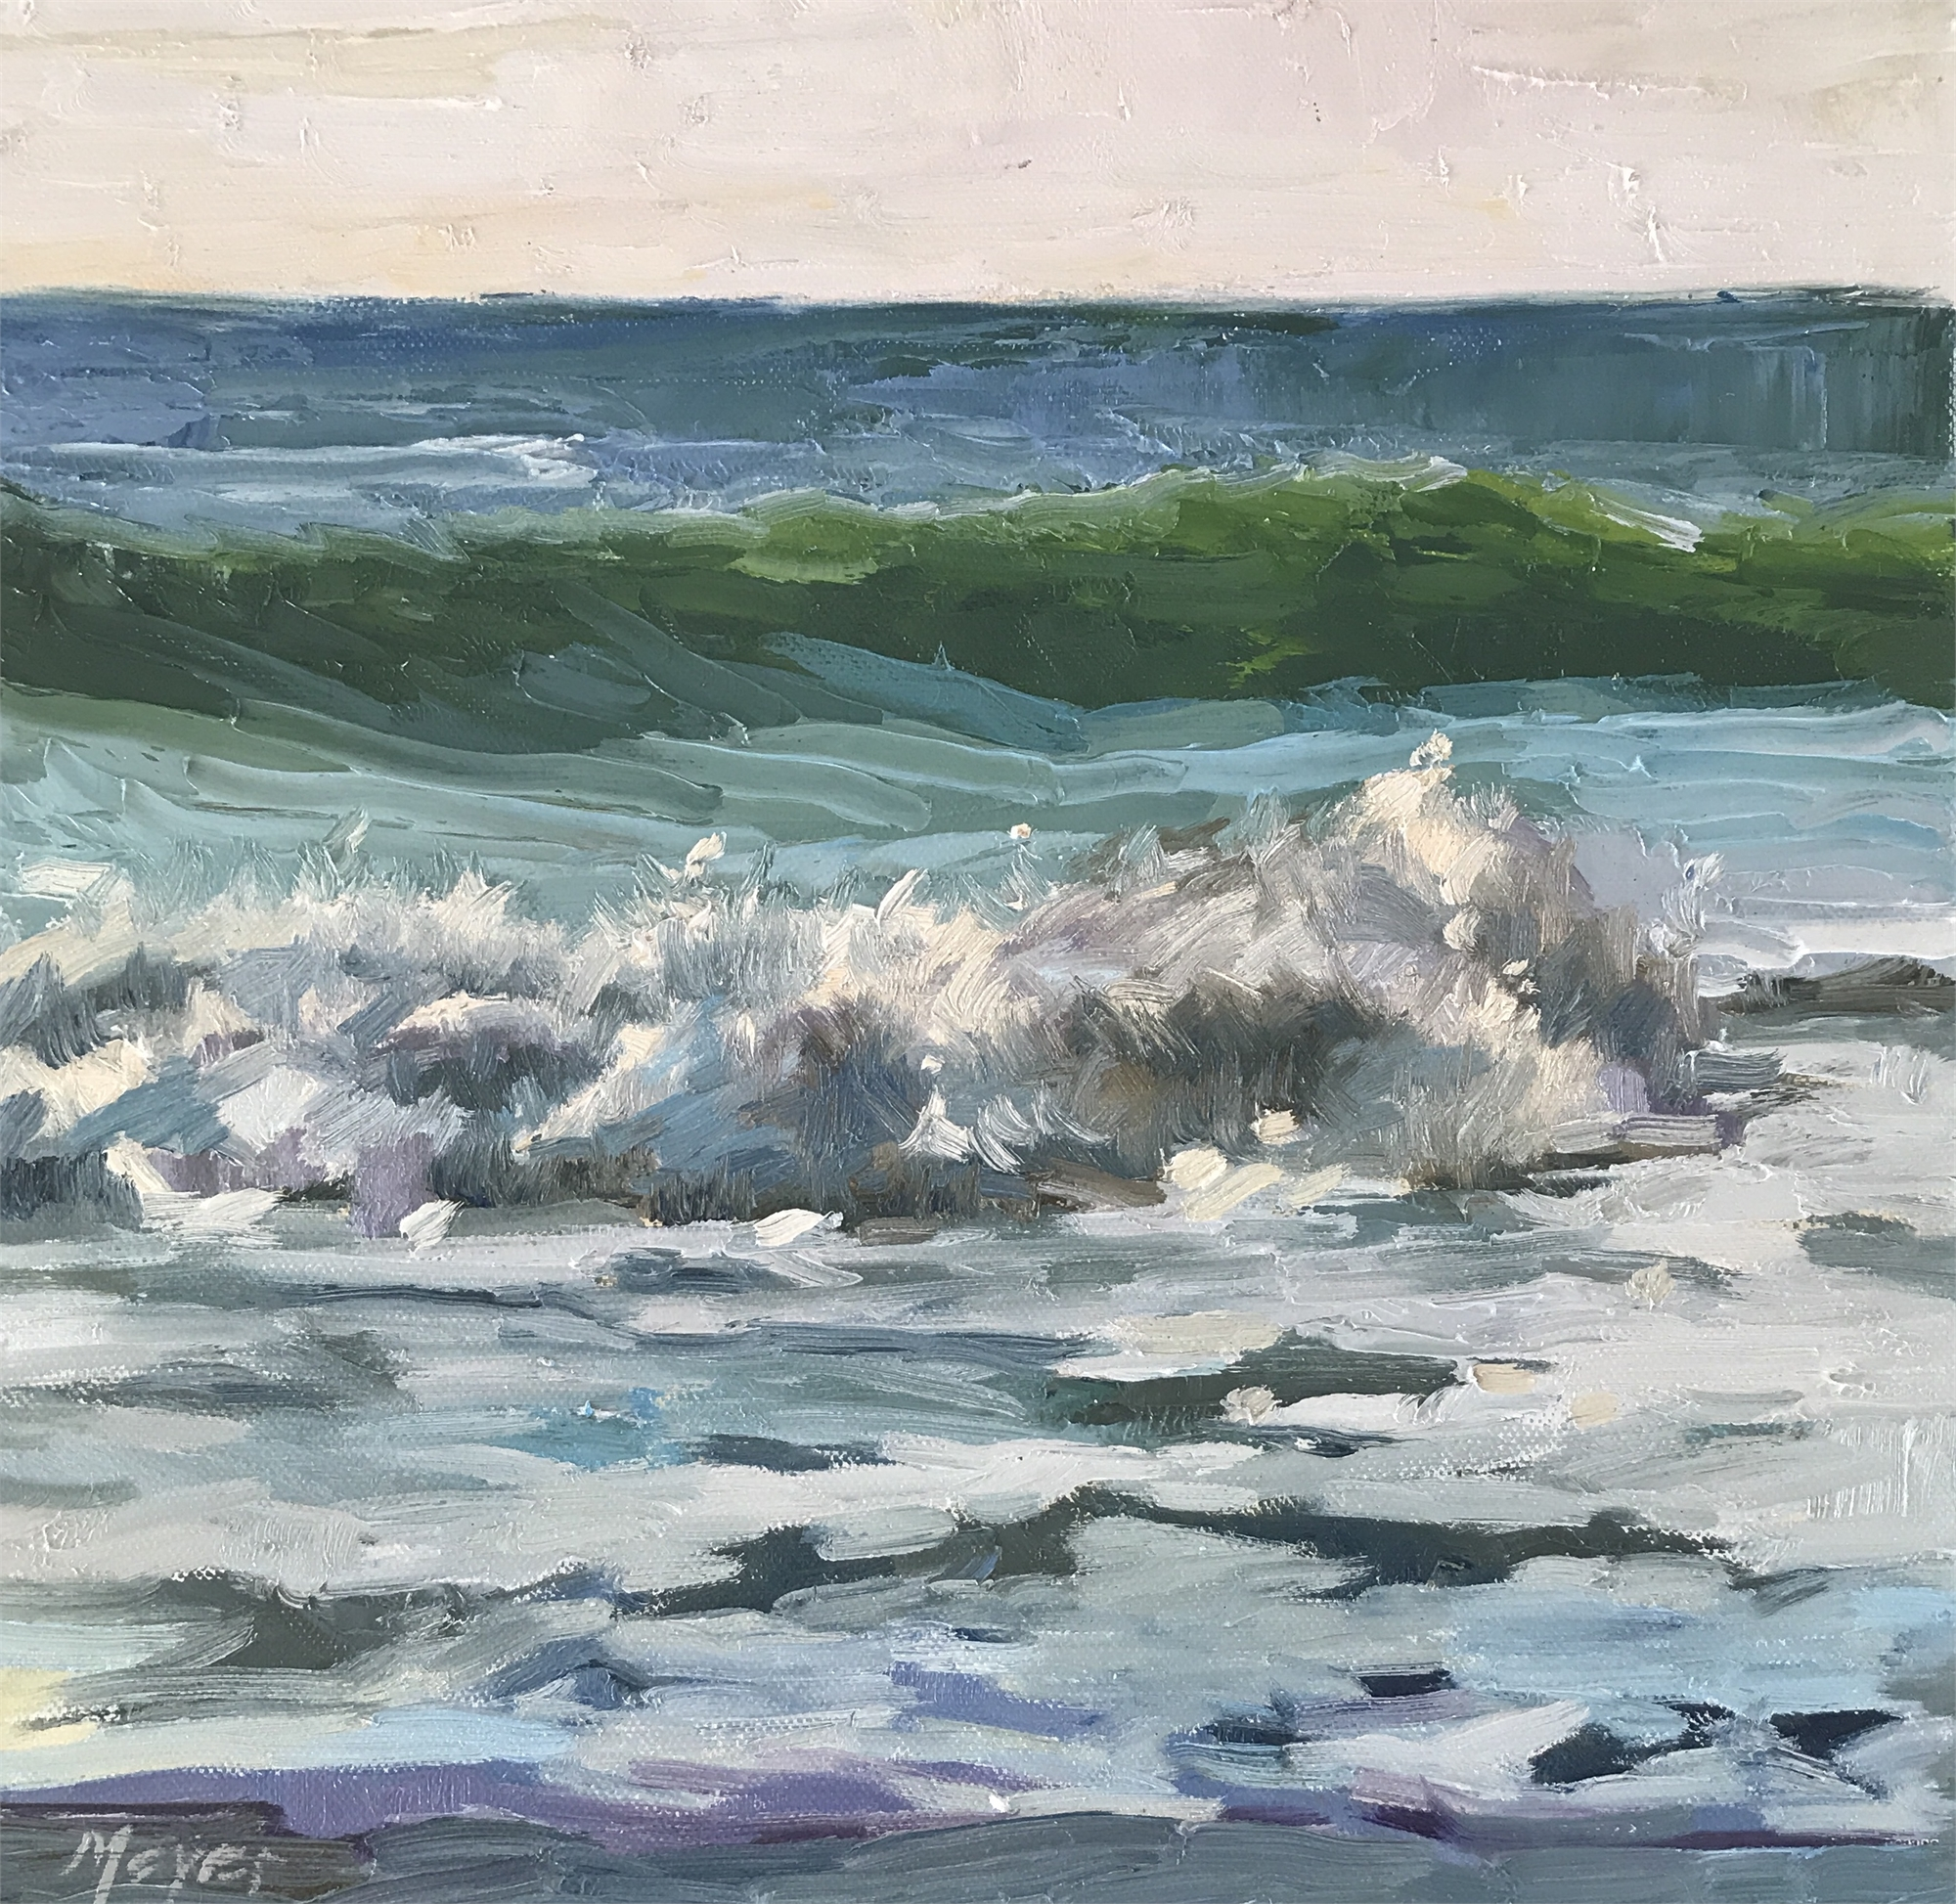 Making Waves, XI by Laurie Meyer